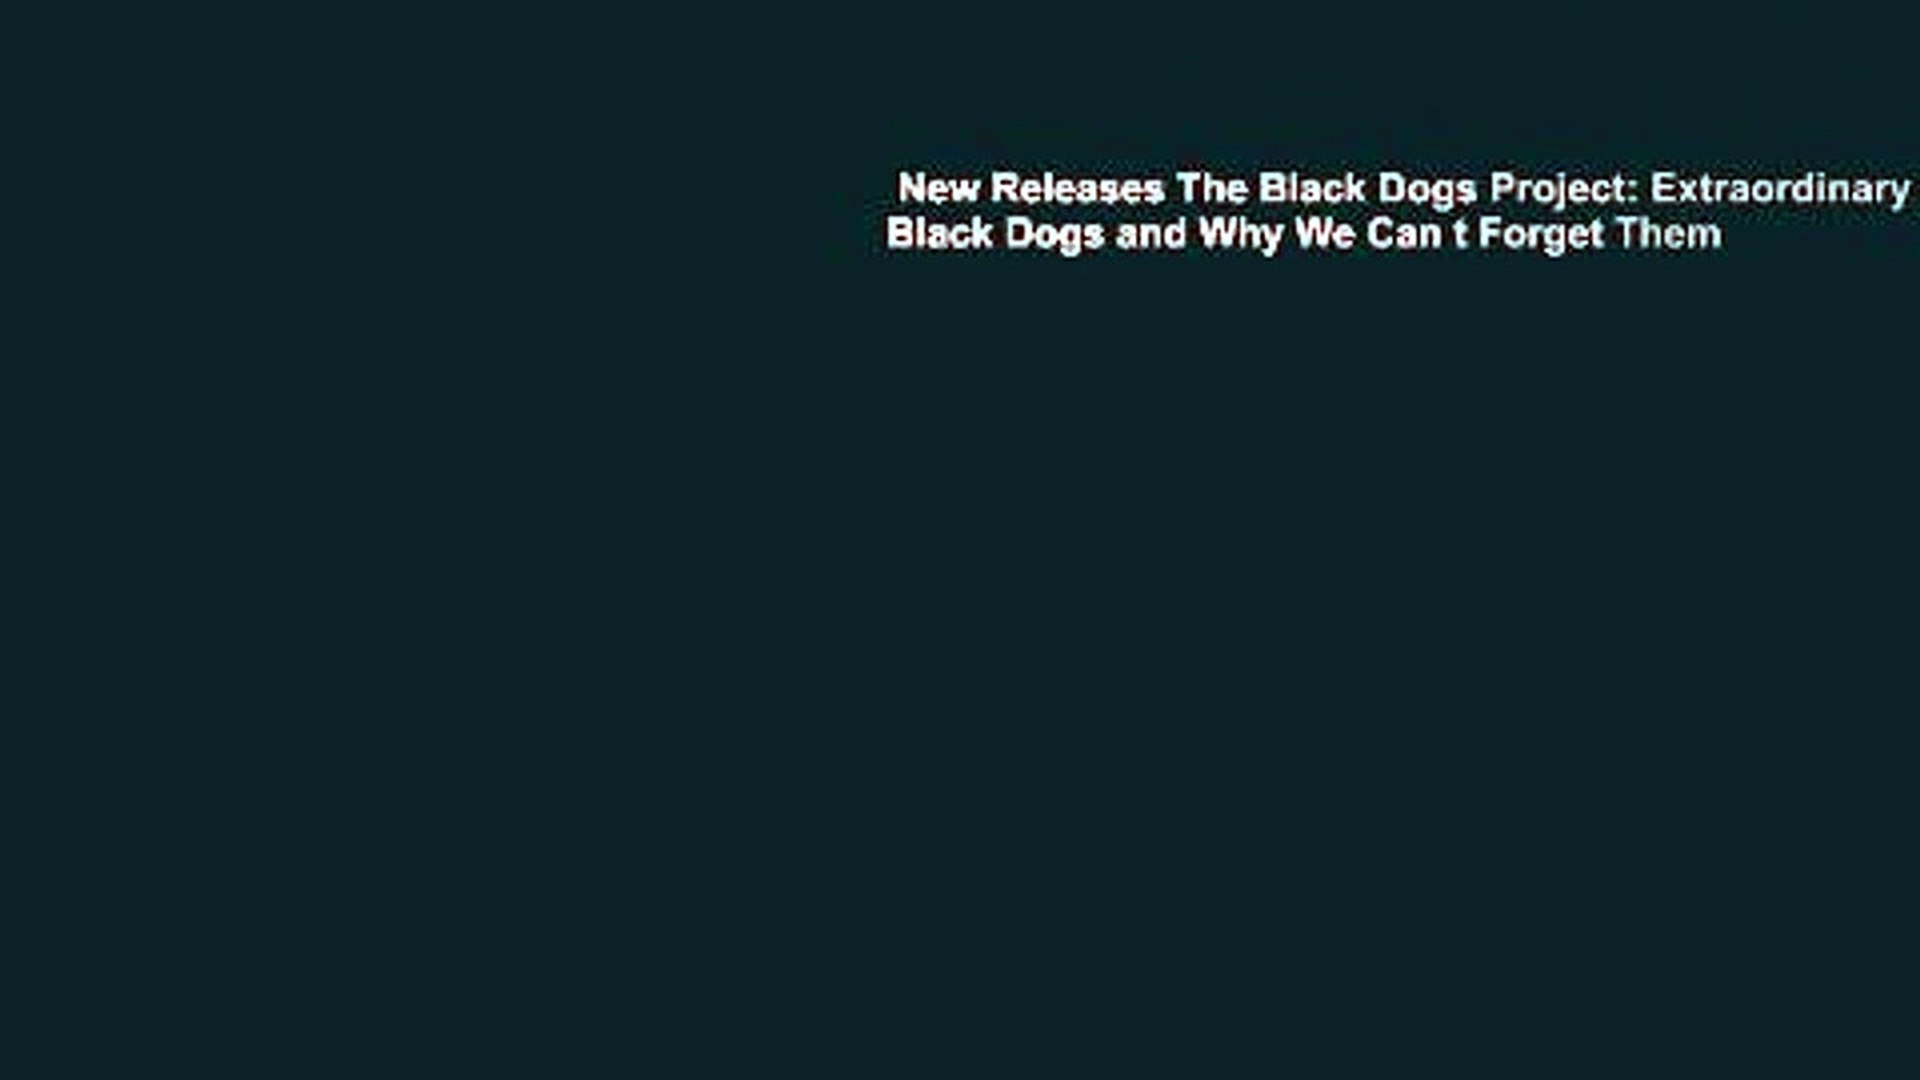 New Releases The Black Dogs Project: Extraordinary Black Dogs and Why We Can t Forget Them